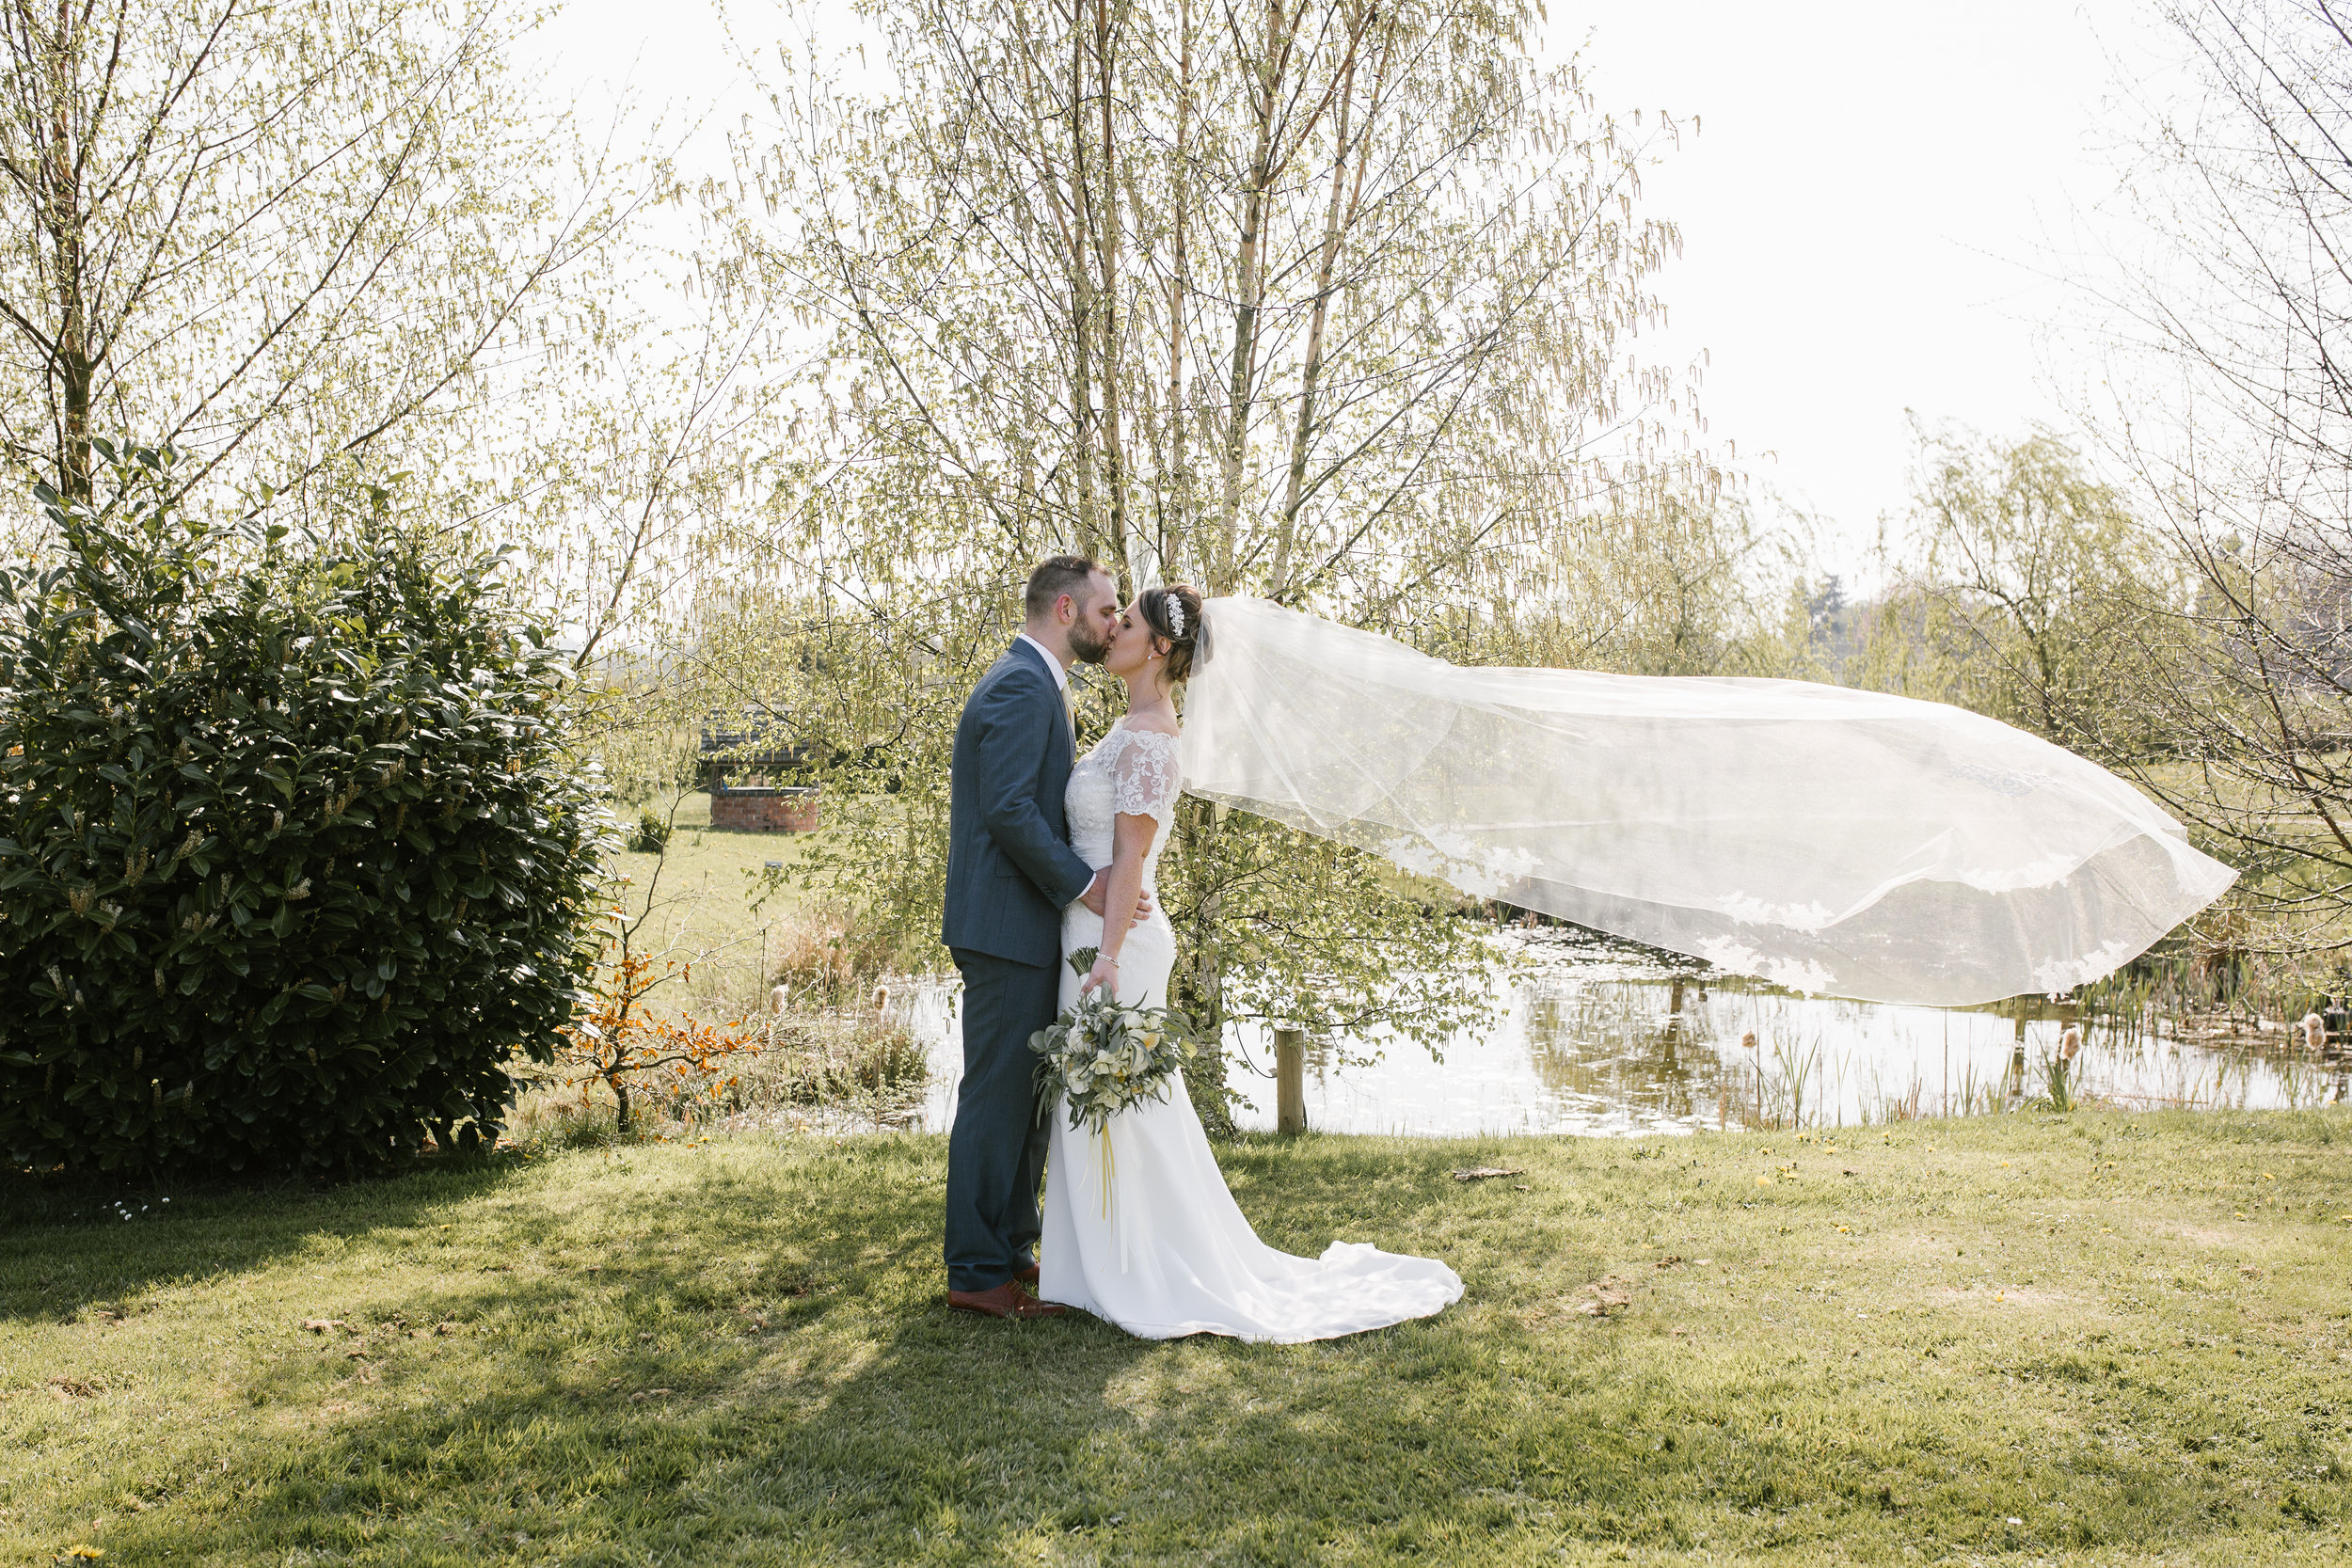 bride and groom kiss as the brides veil floats in the wind- wedding at the boat house at aston marina